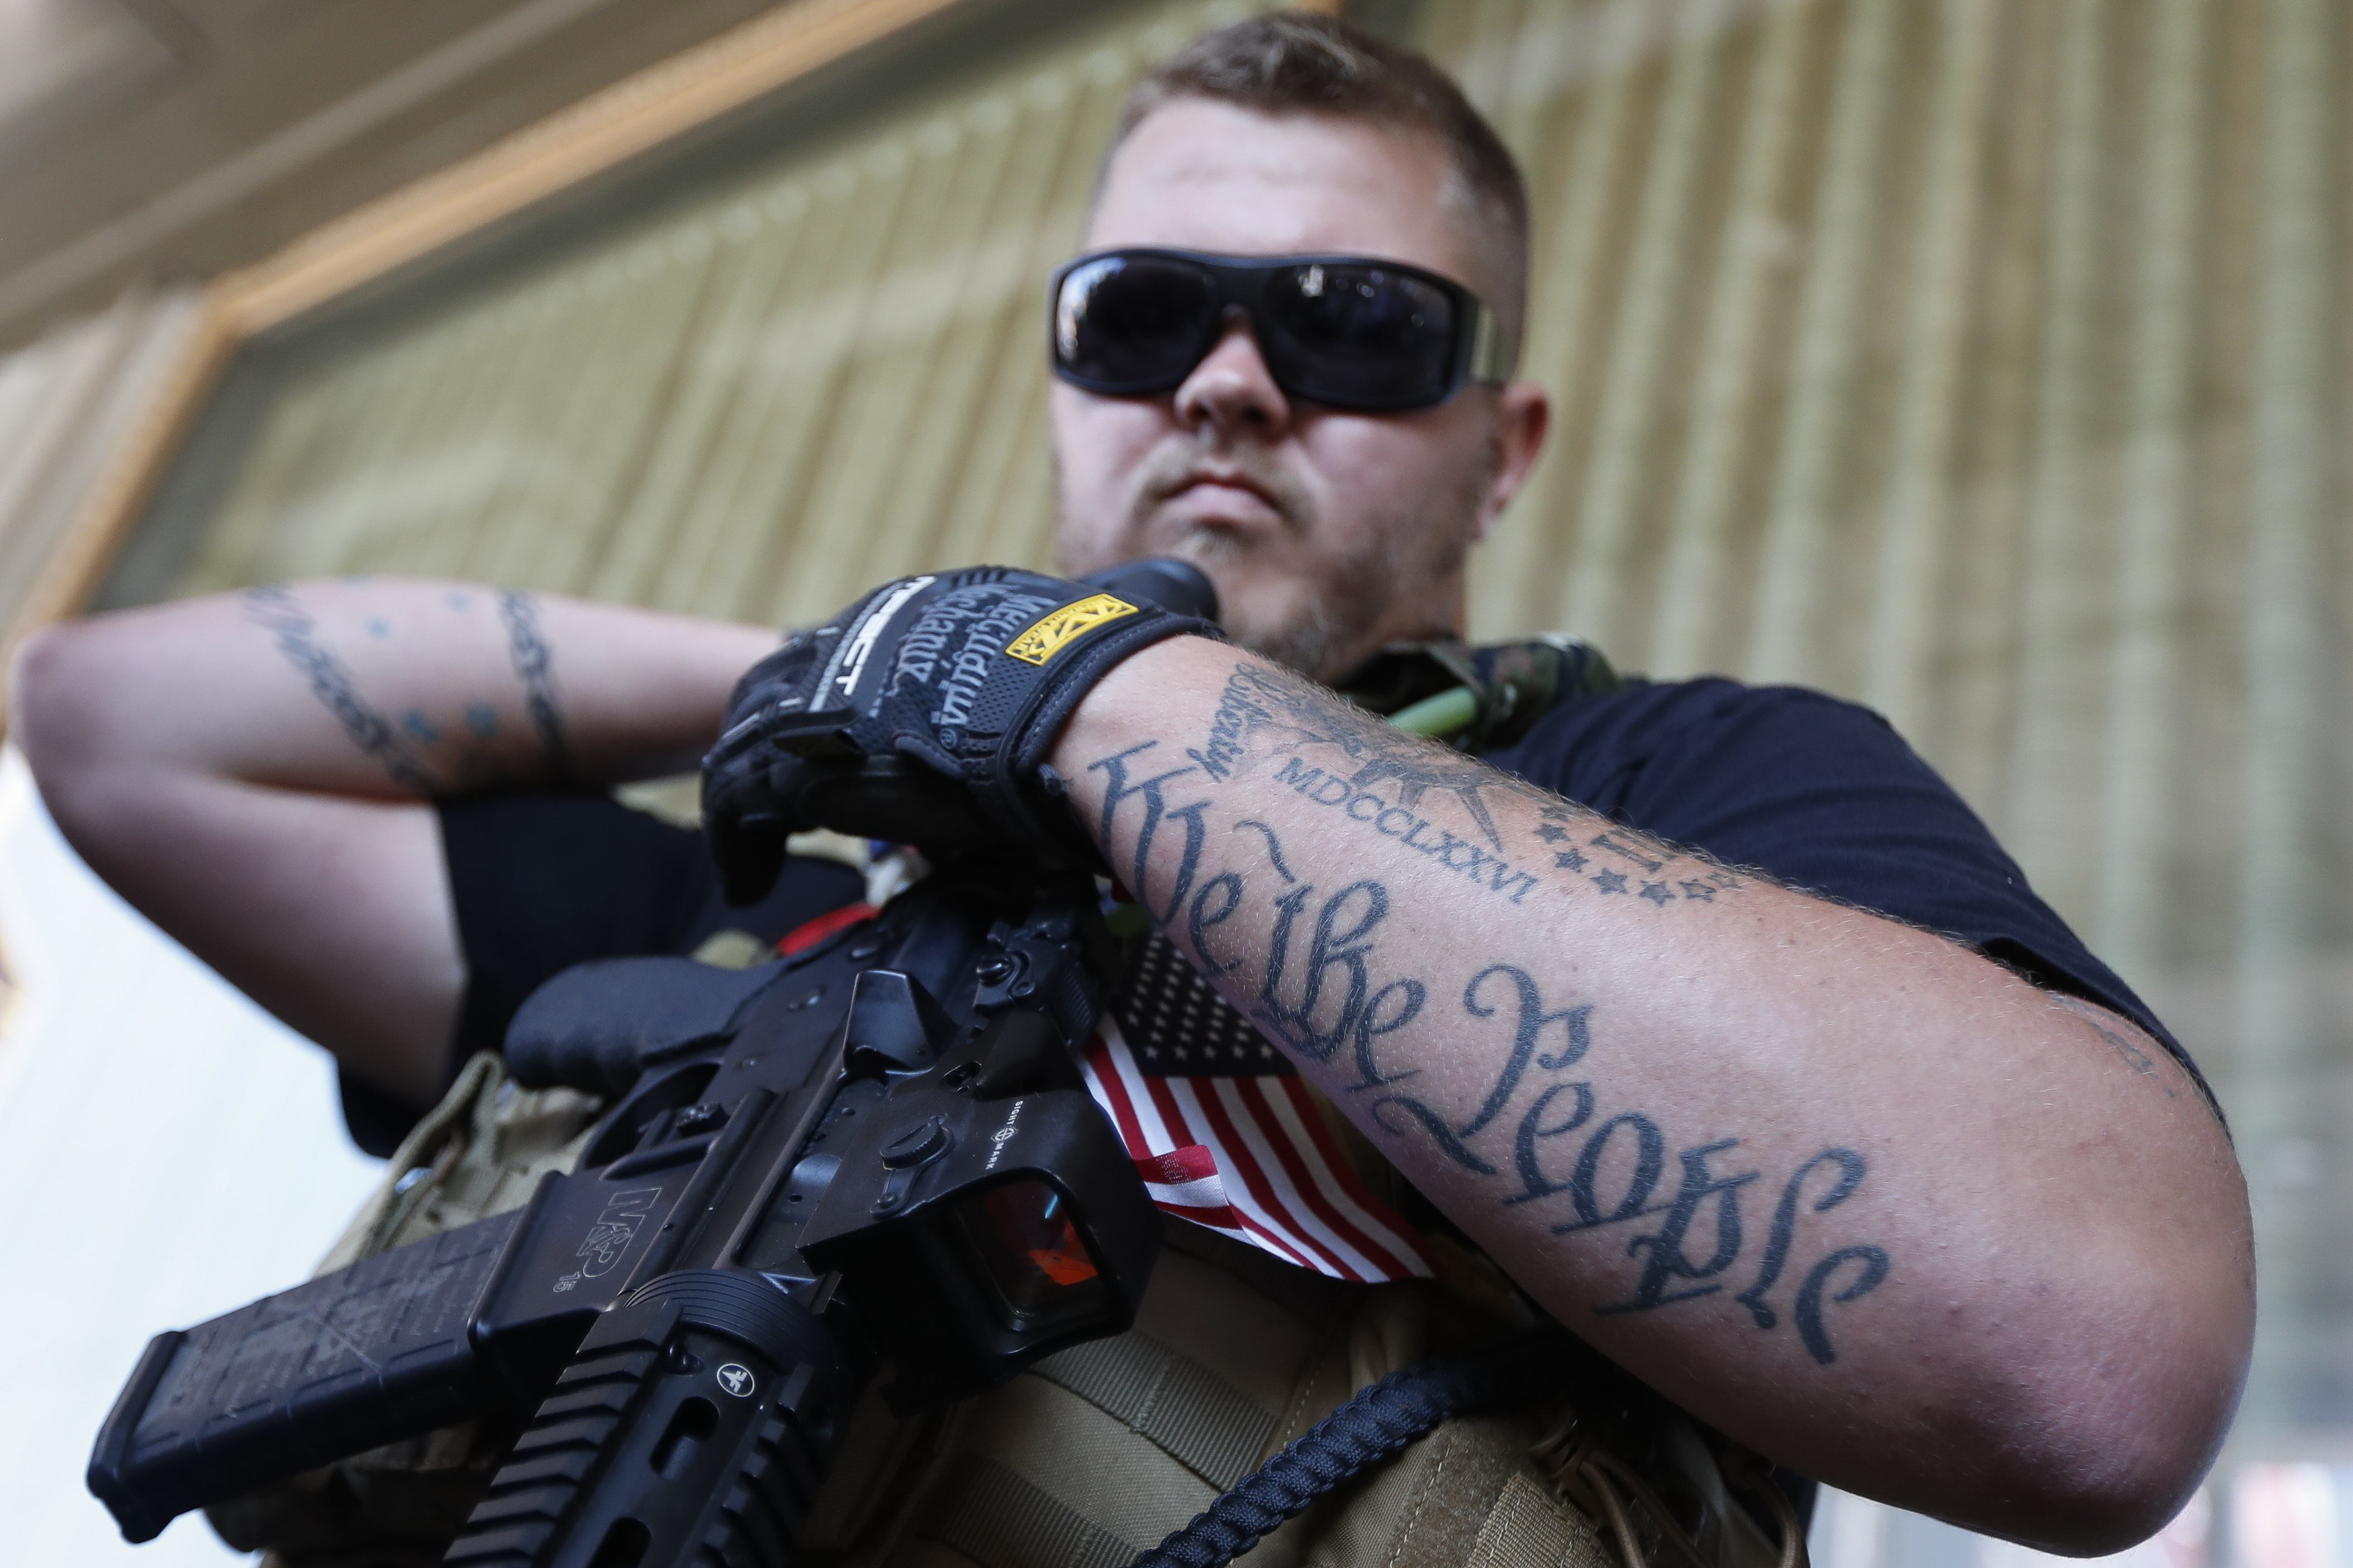 Trevor Leis, exercising his Ohio open carry rights, stands armed in Public Square on Tuesday, July 19, 2016, in Cleveland, during the second day of the Republican National Convention. (AP Photo/John Minchillo)